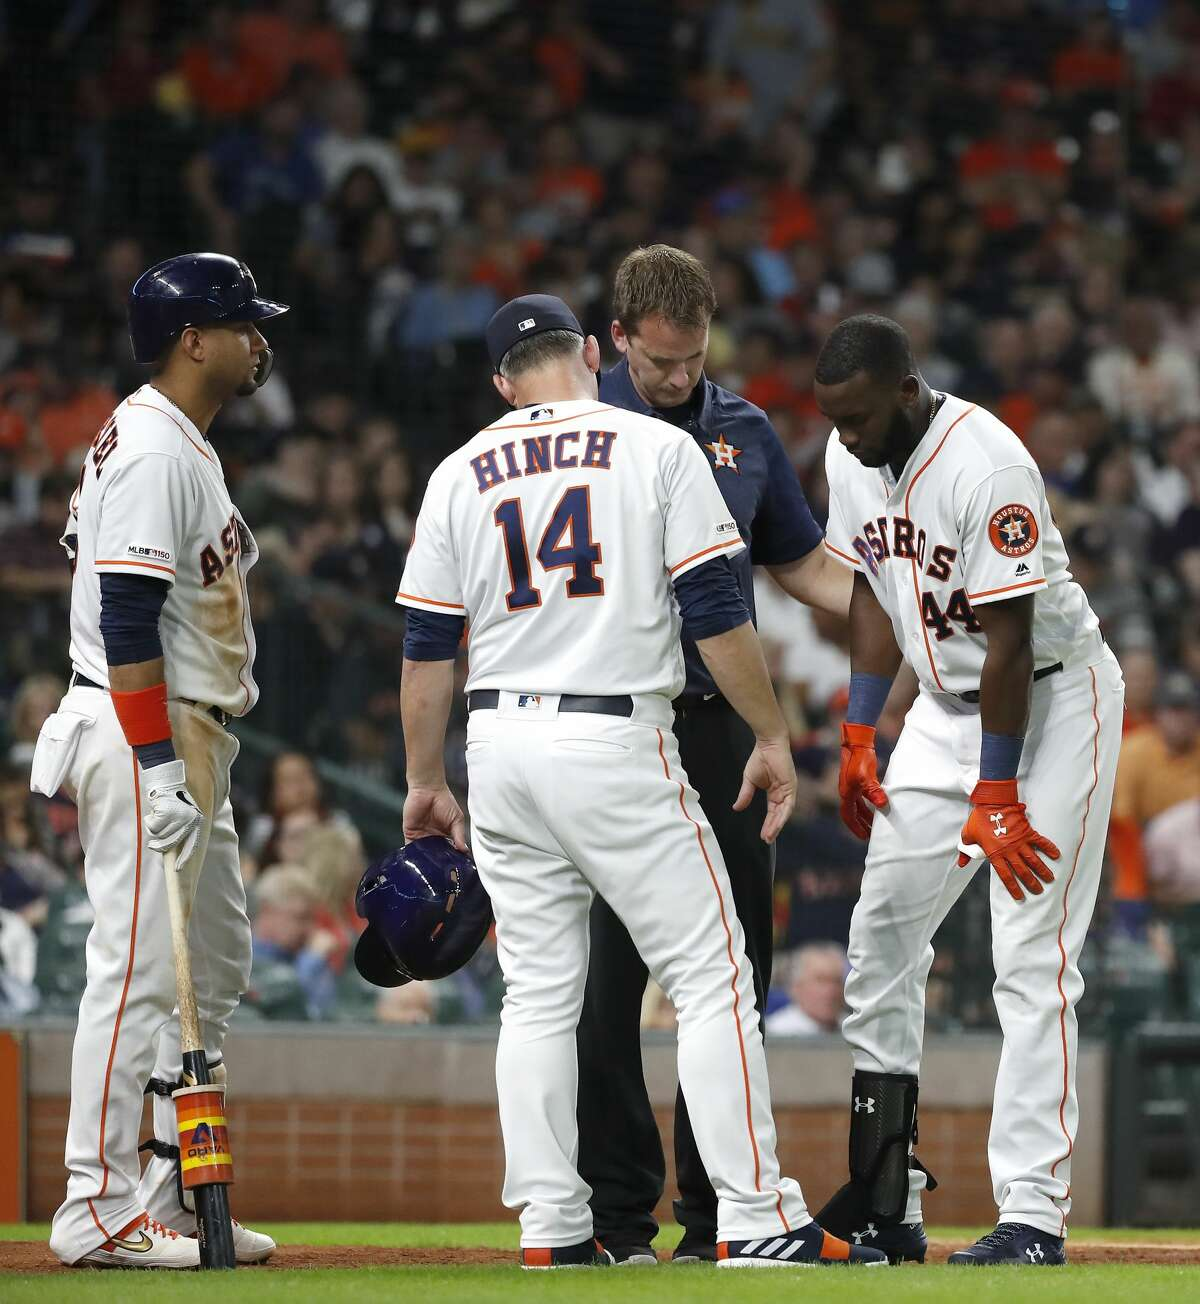 Houston Astros designated hitter Yordan Alvarez (44) is tended to after fouling a ball off his knee during the fourth inning of an MLB baseball game at Minute Maid Park, Tuesday, June 25, 2019.